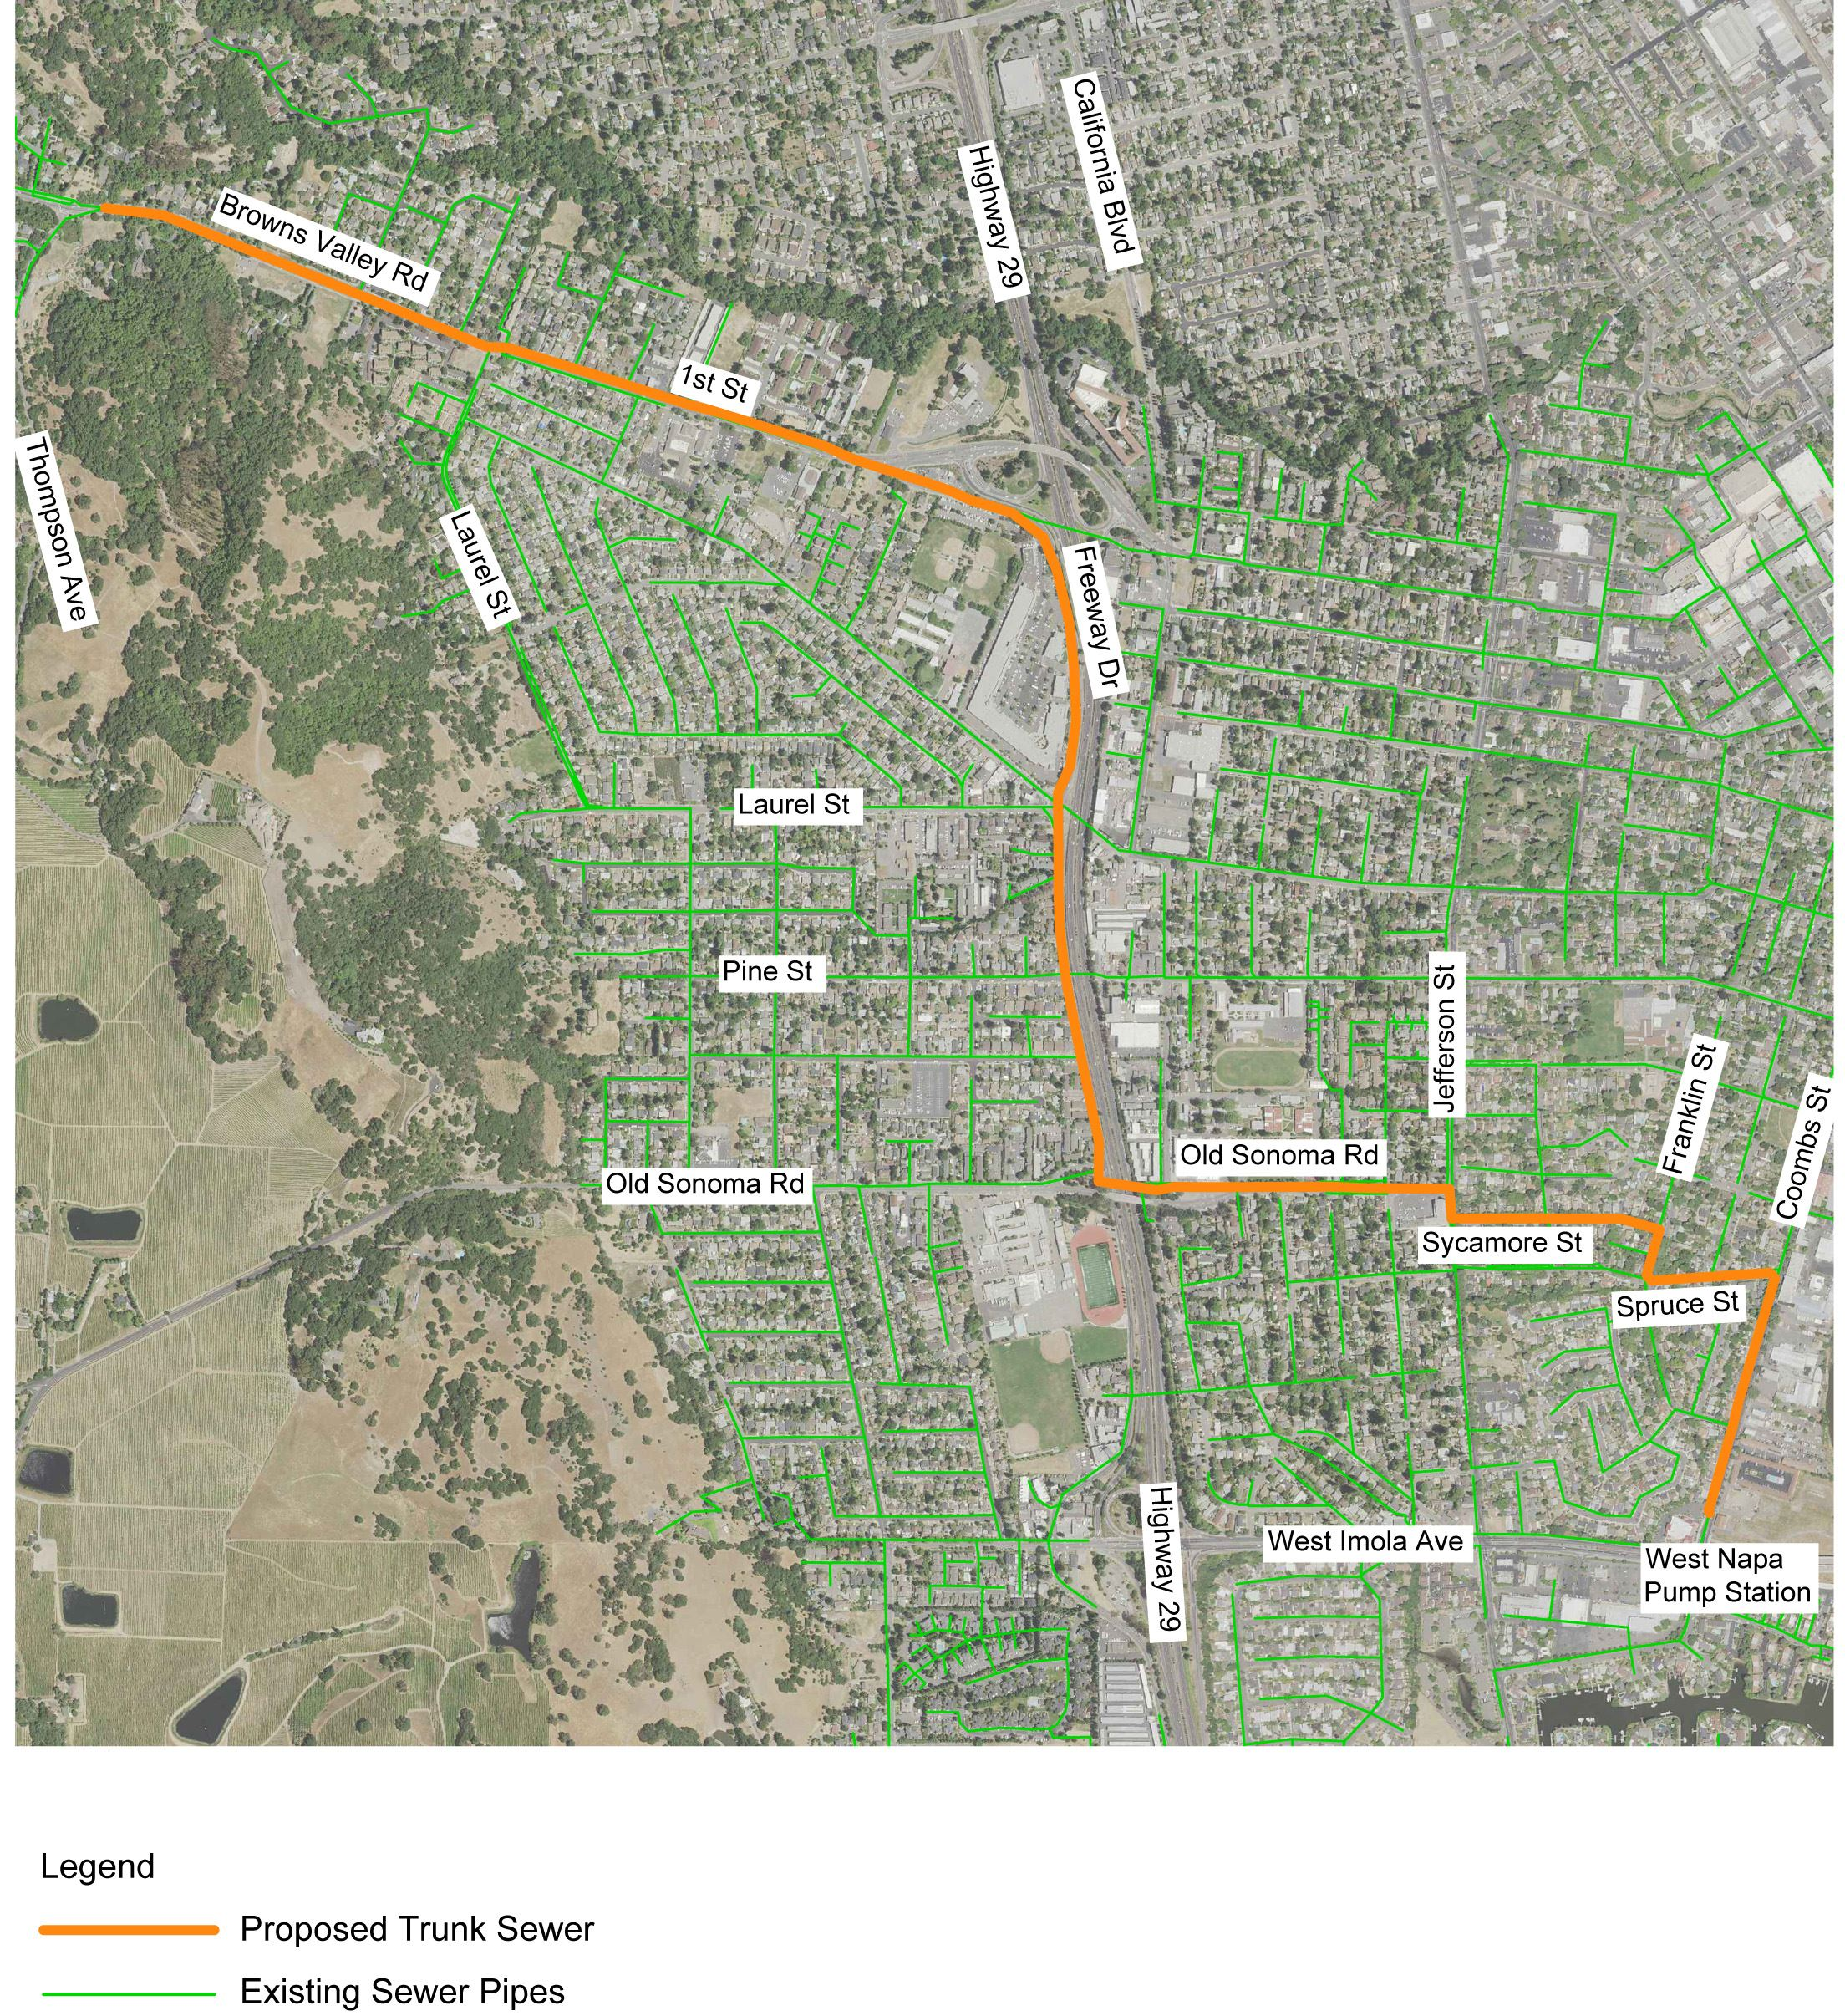 Proposed Browns Valley Trunk Sewer Alignment